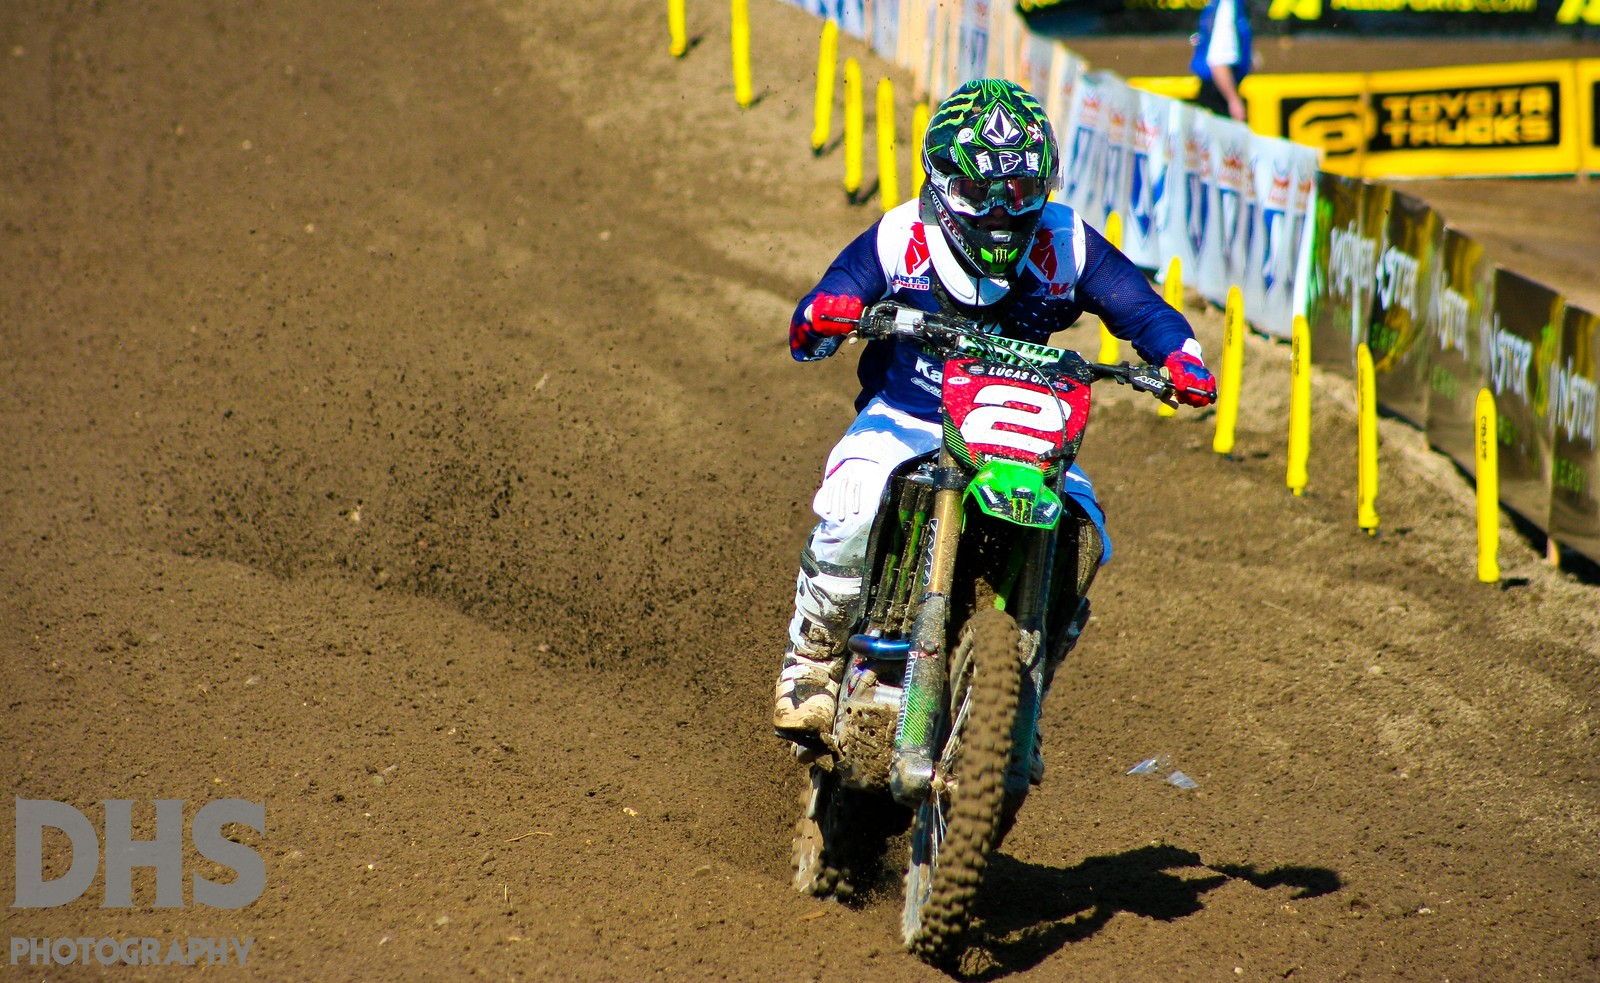 Hangtown_09_Villopoto - dhsphotography - Motocross Pictures - Vital MX